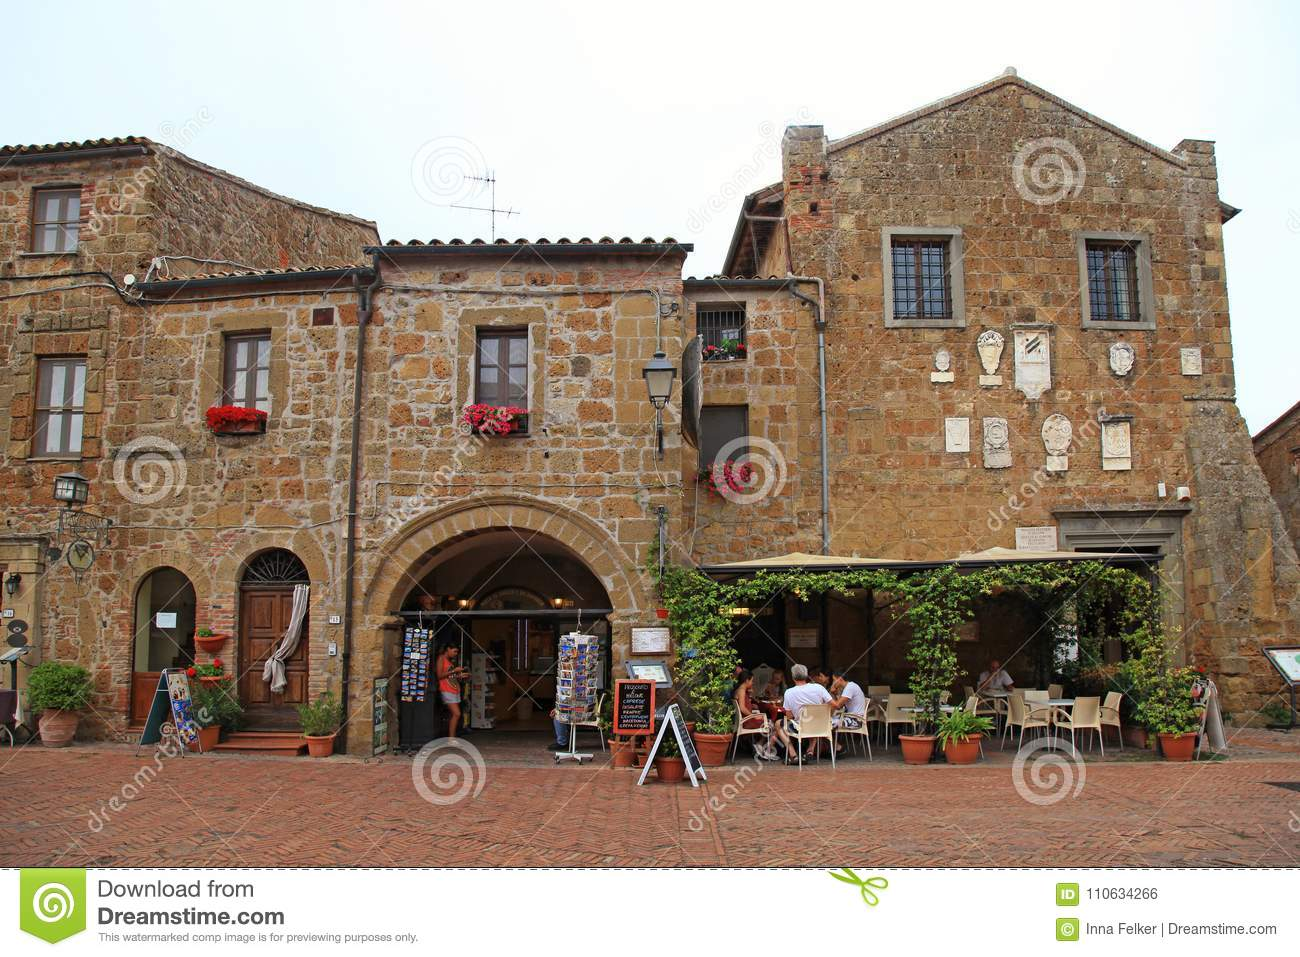 Central square of Sovana, a medieval village in Grosseto province, Tuscany, Italy.